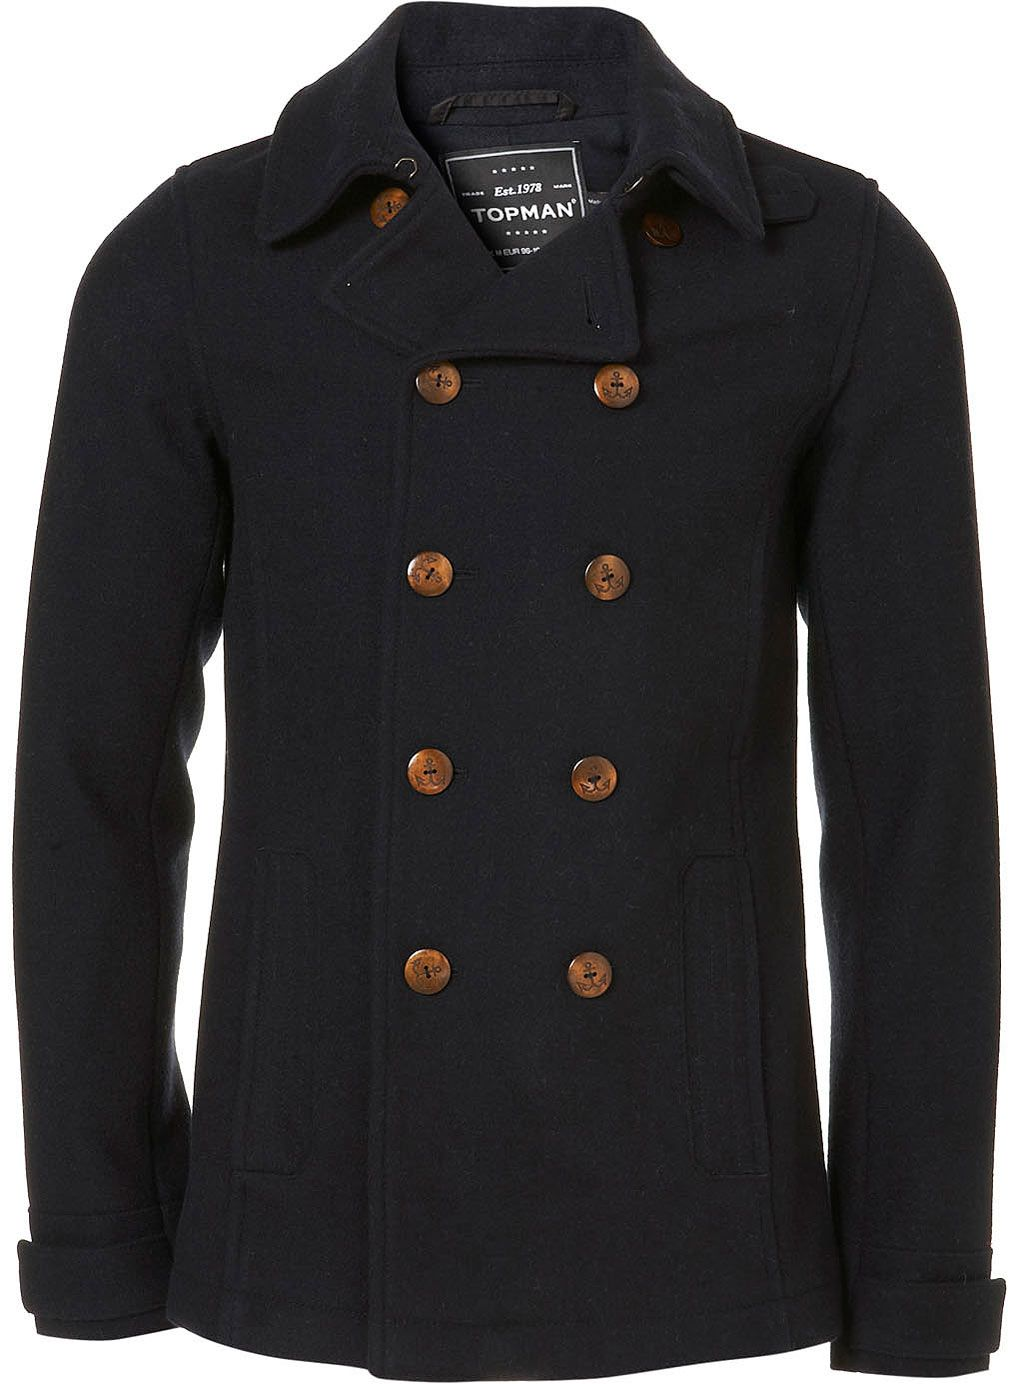 bfeafb7d1d5 Navy Wool Skinny Fit Peacoat - Wool Coats - Mens Jackets   Coats - Clothing  - TOPMAN